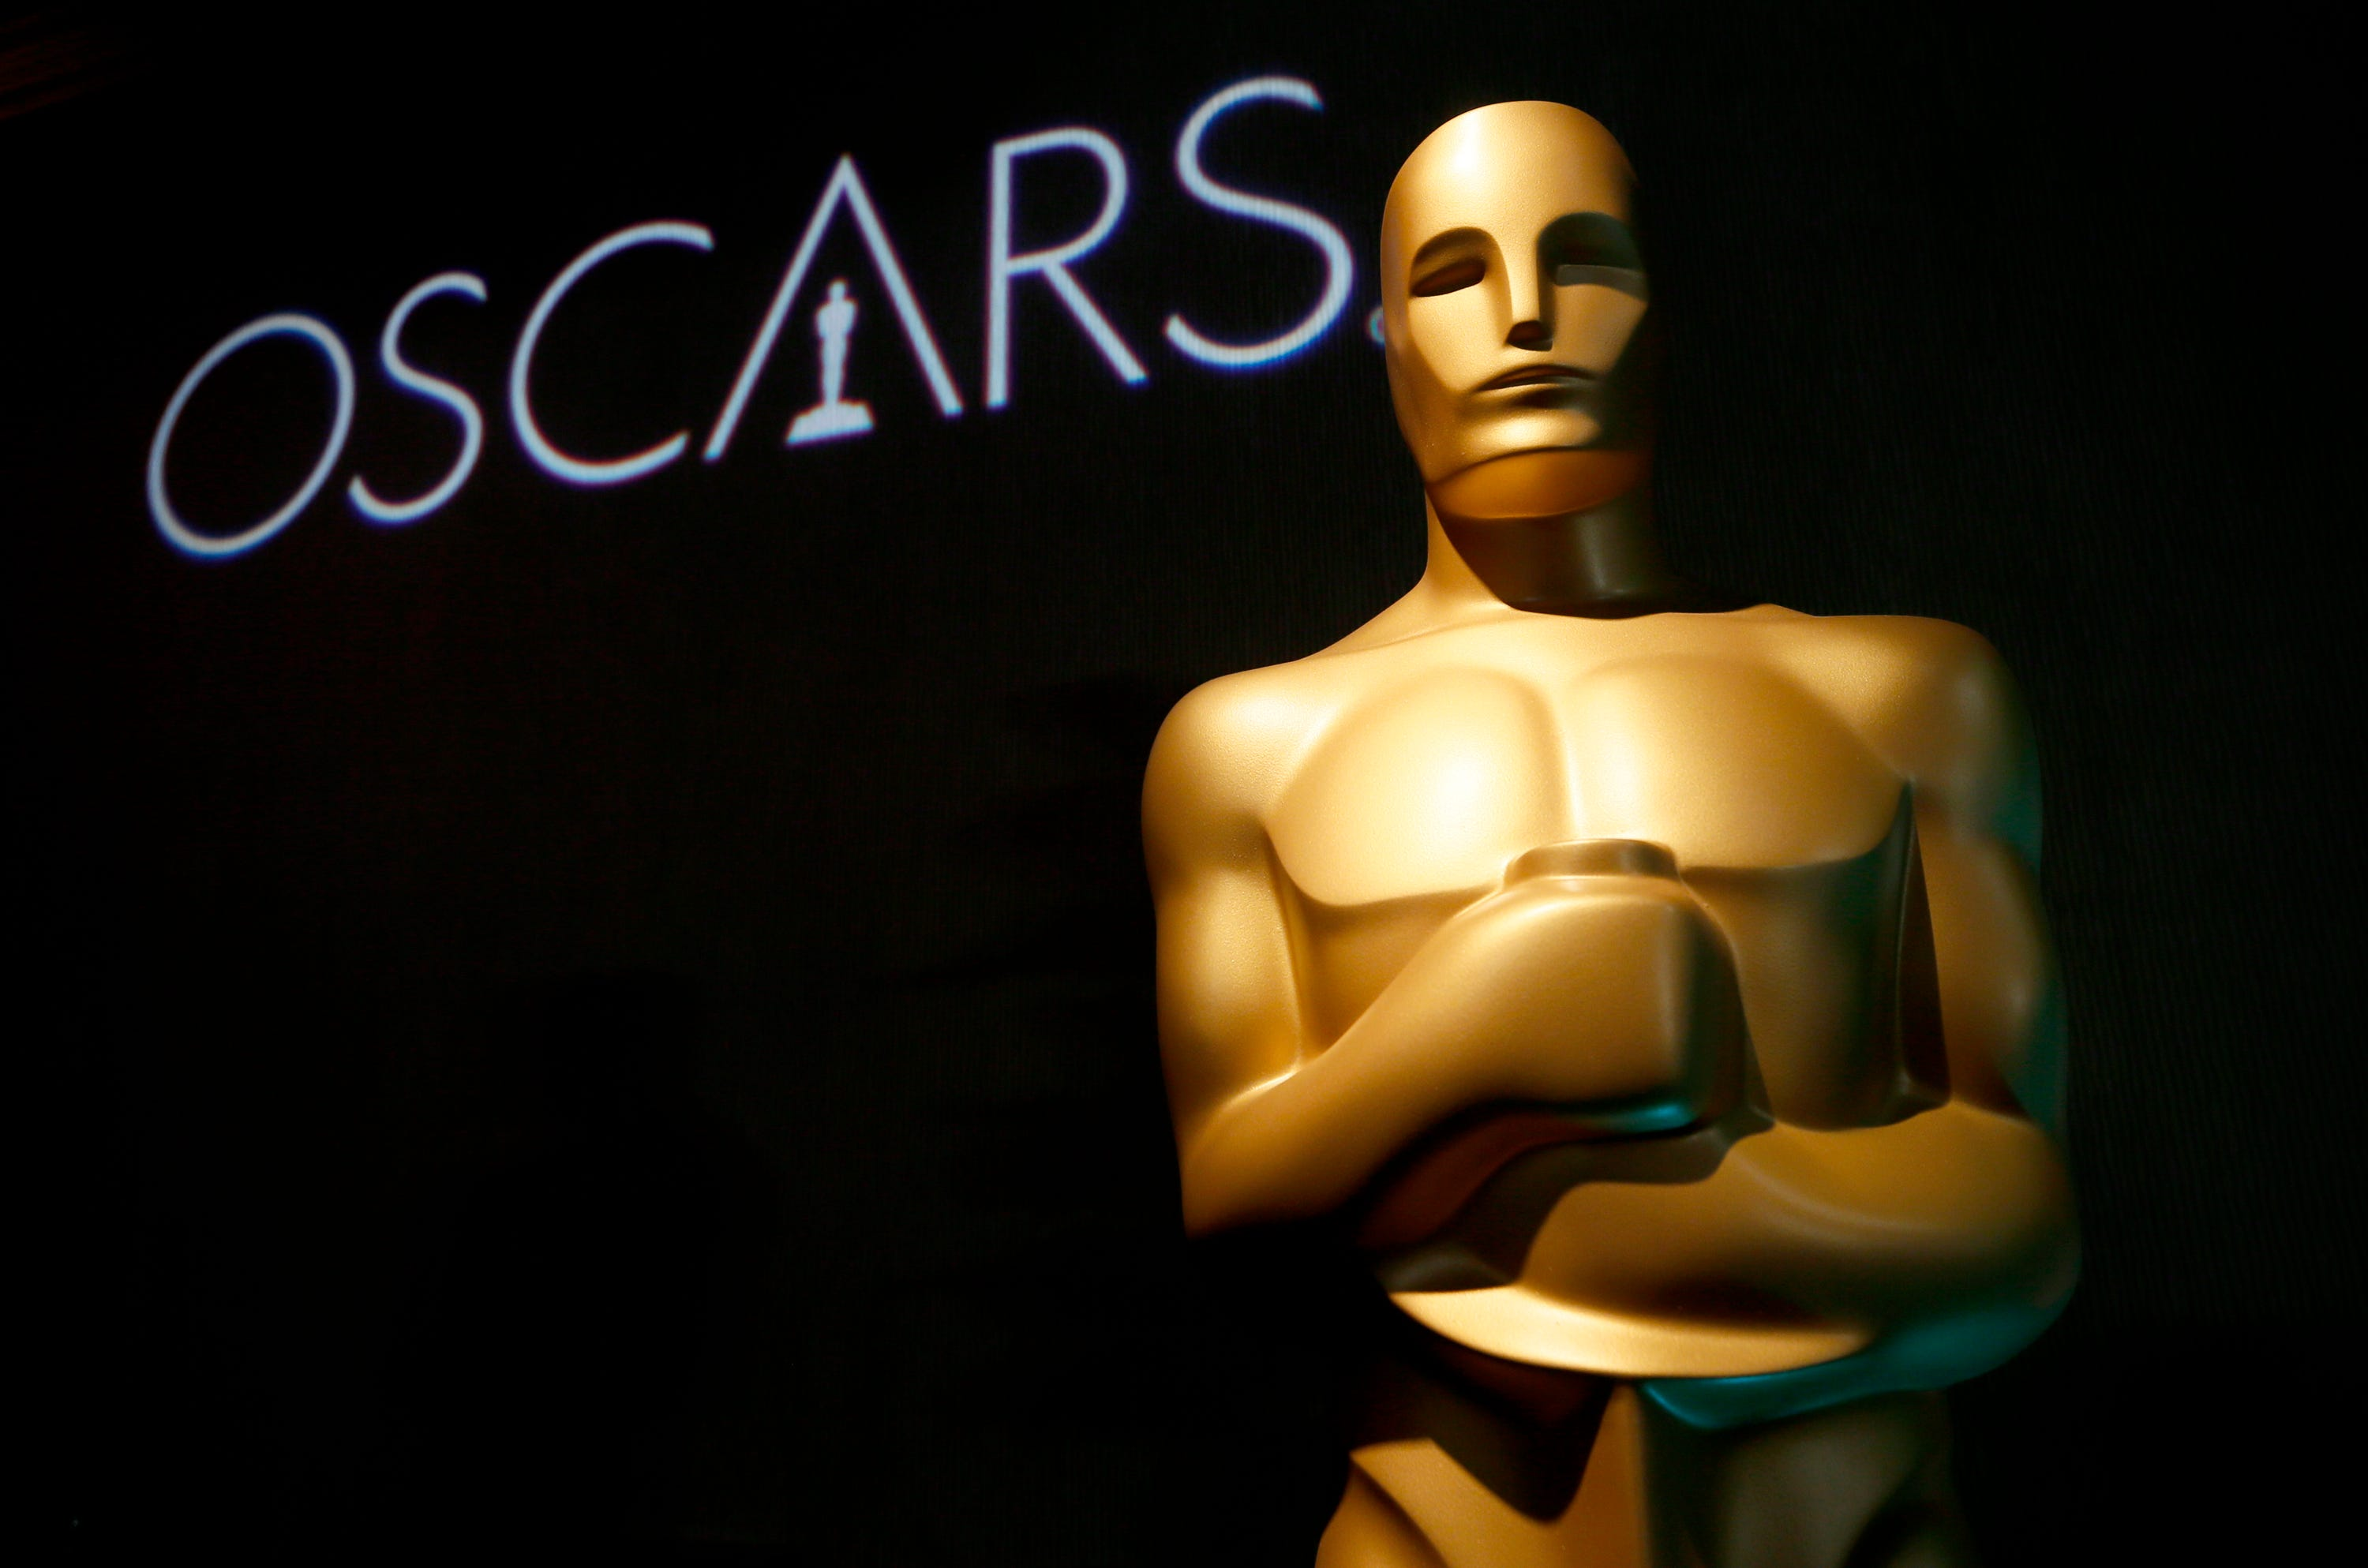 After Hollywood outcry, Academy reverses Oscars plans: All awards will air live, after all